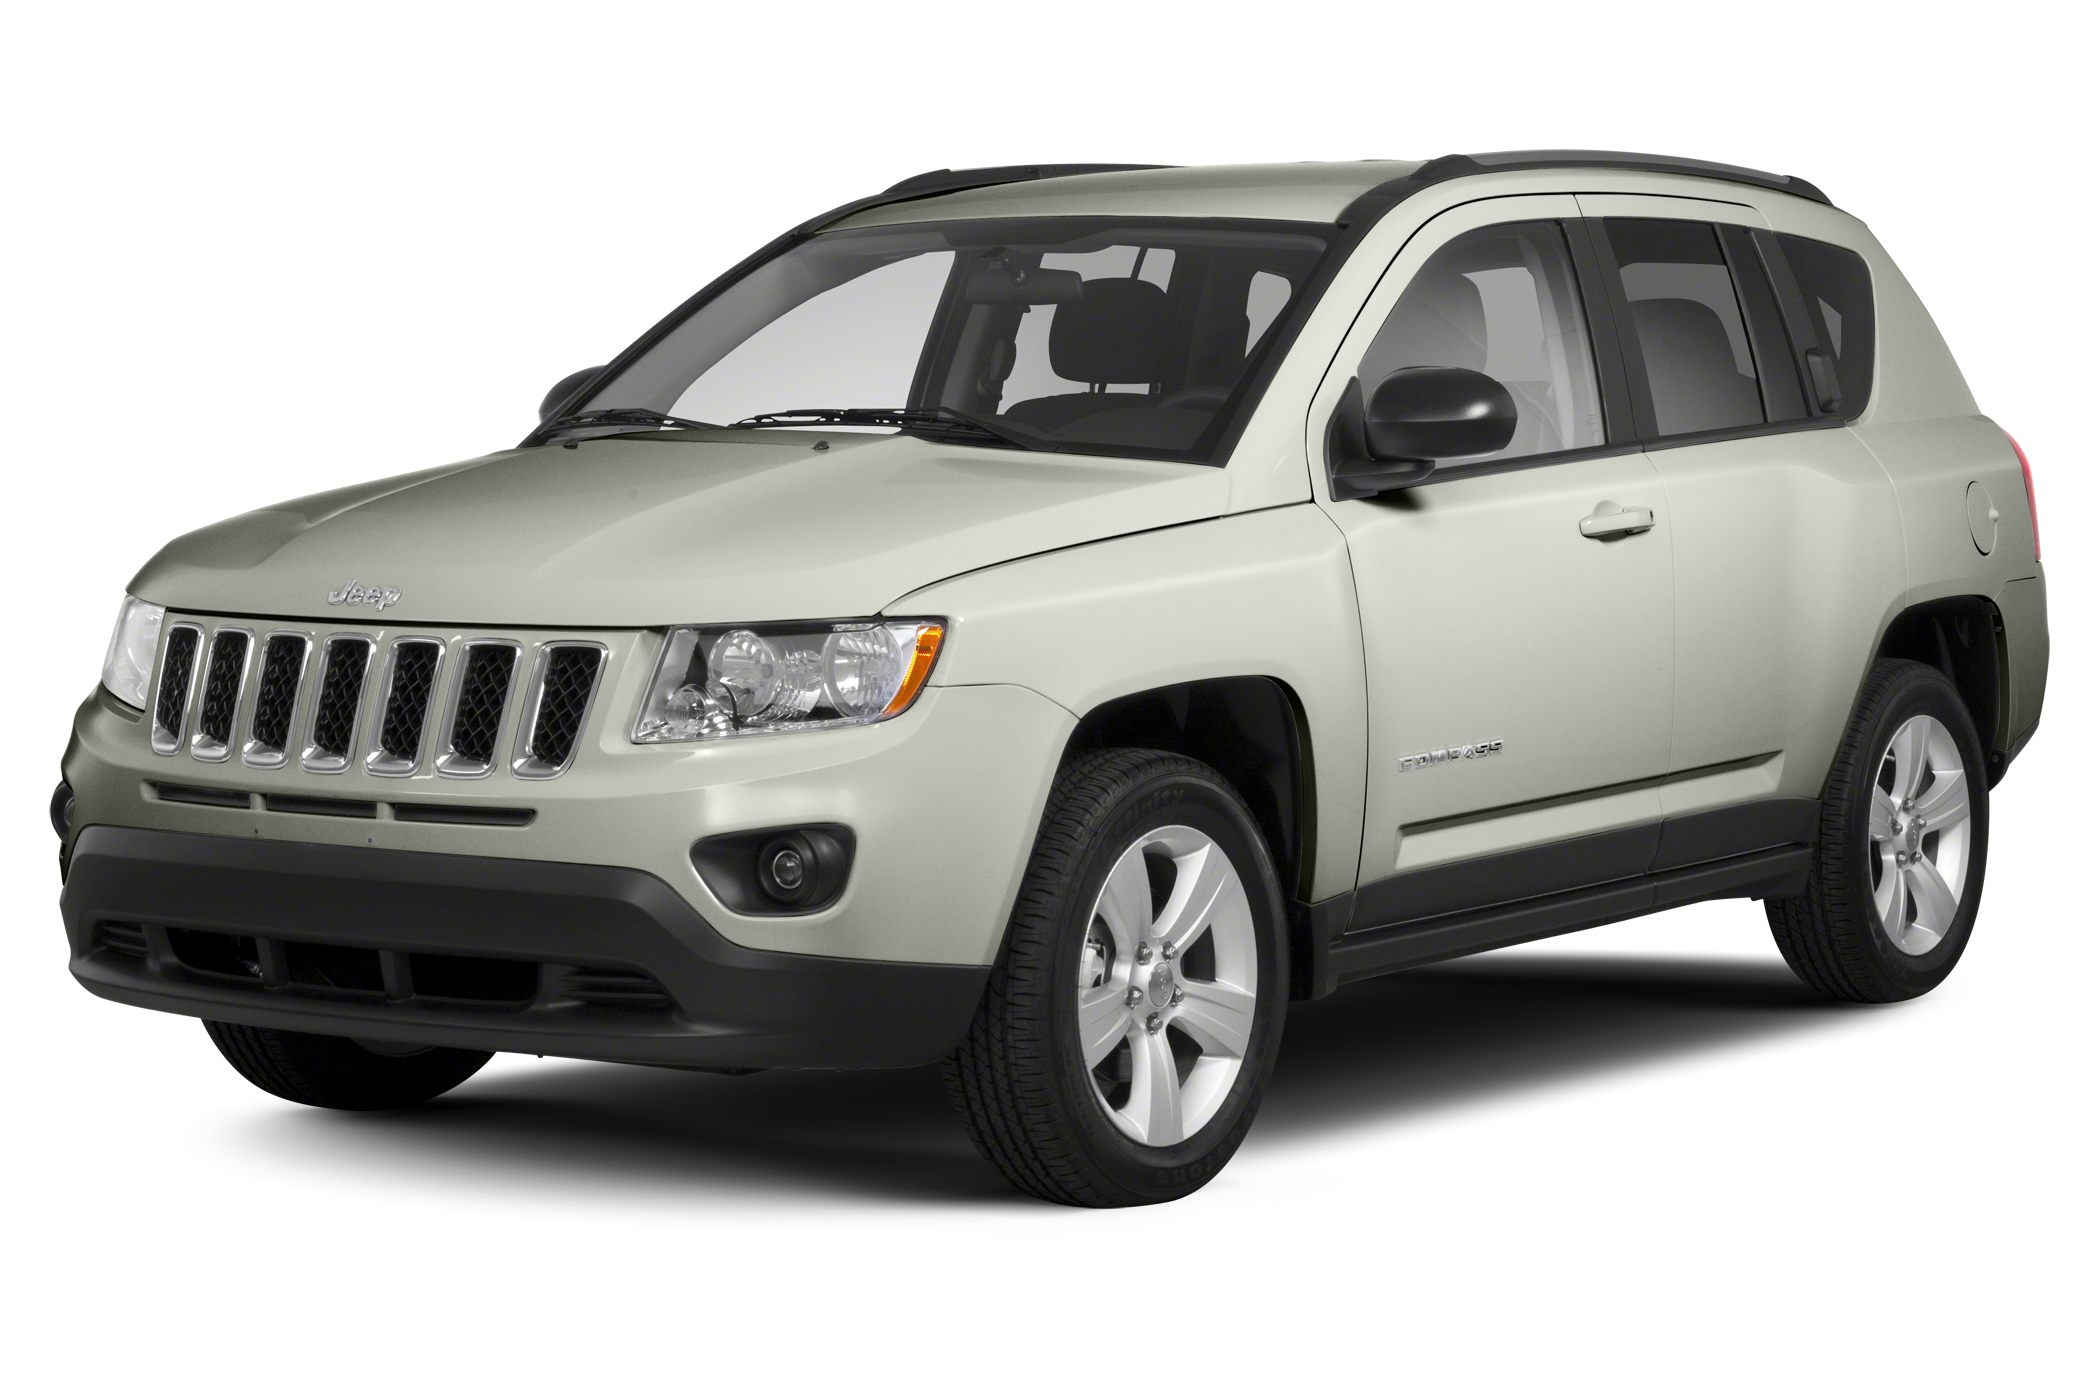 2013 Jeep Compass Sport SUV for sale in Grants Pass for $15,998 with 6,453 miles.